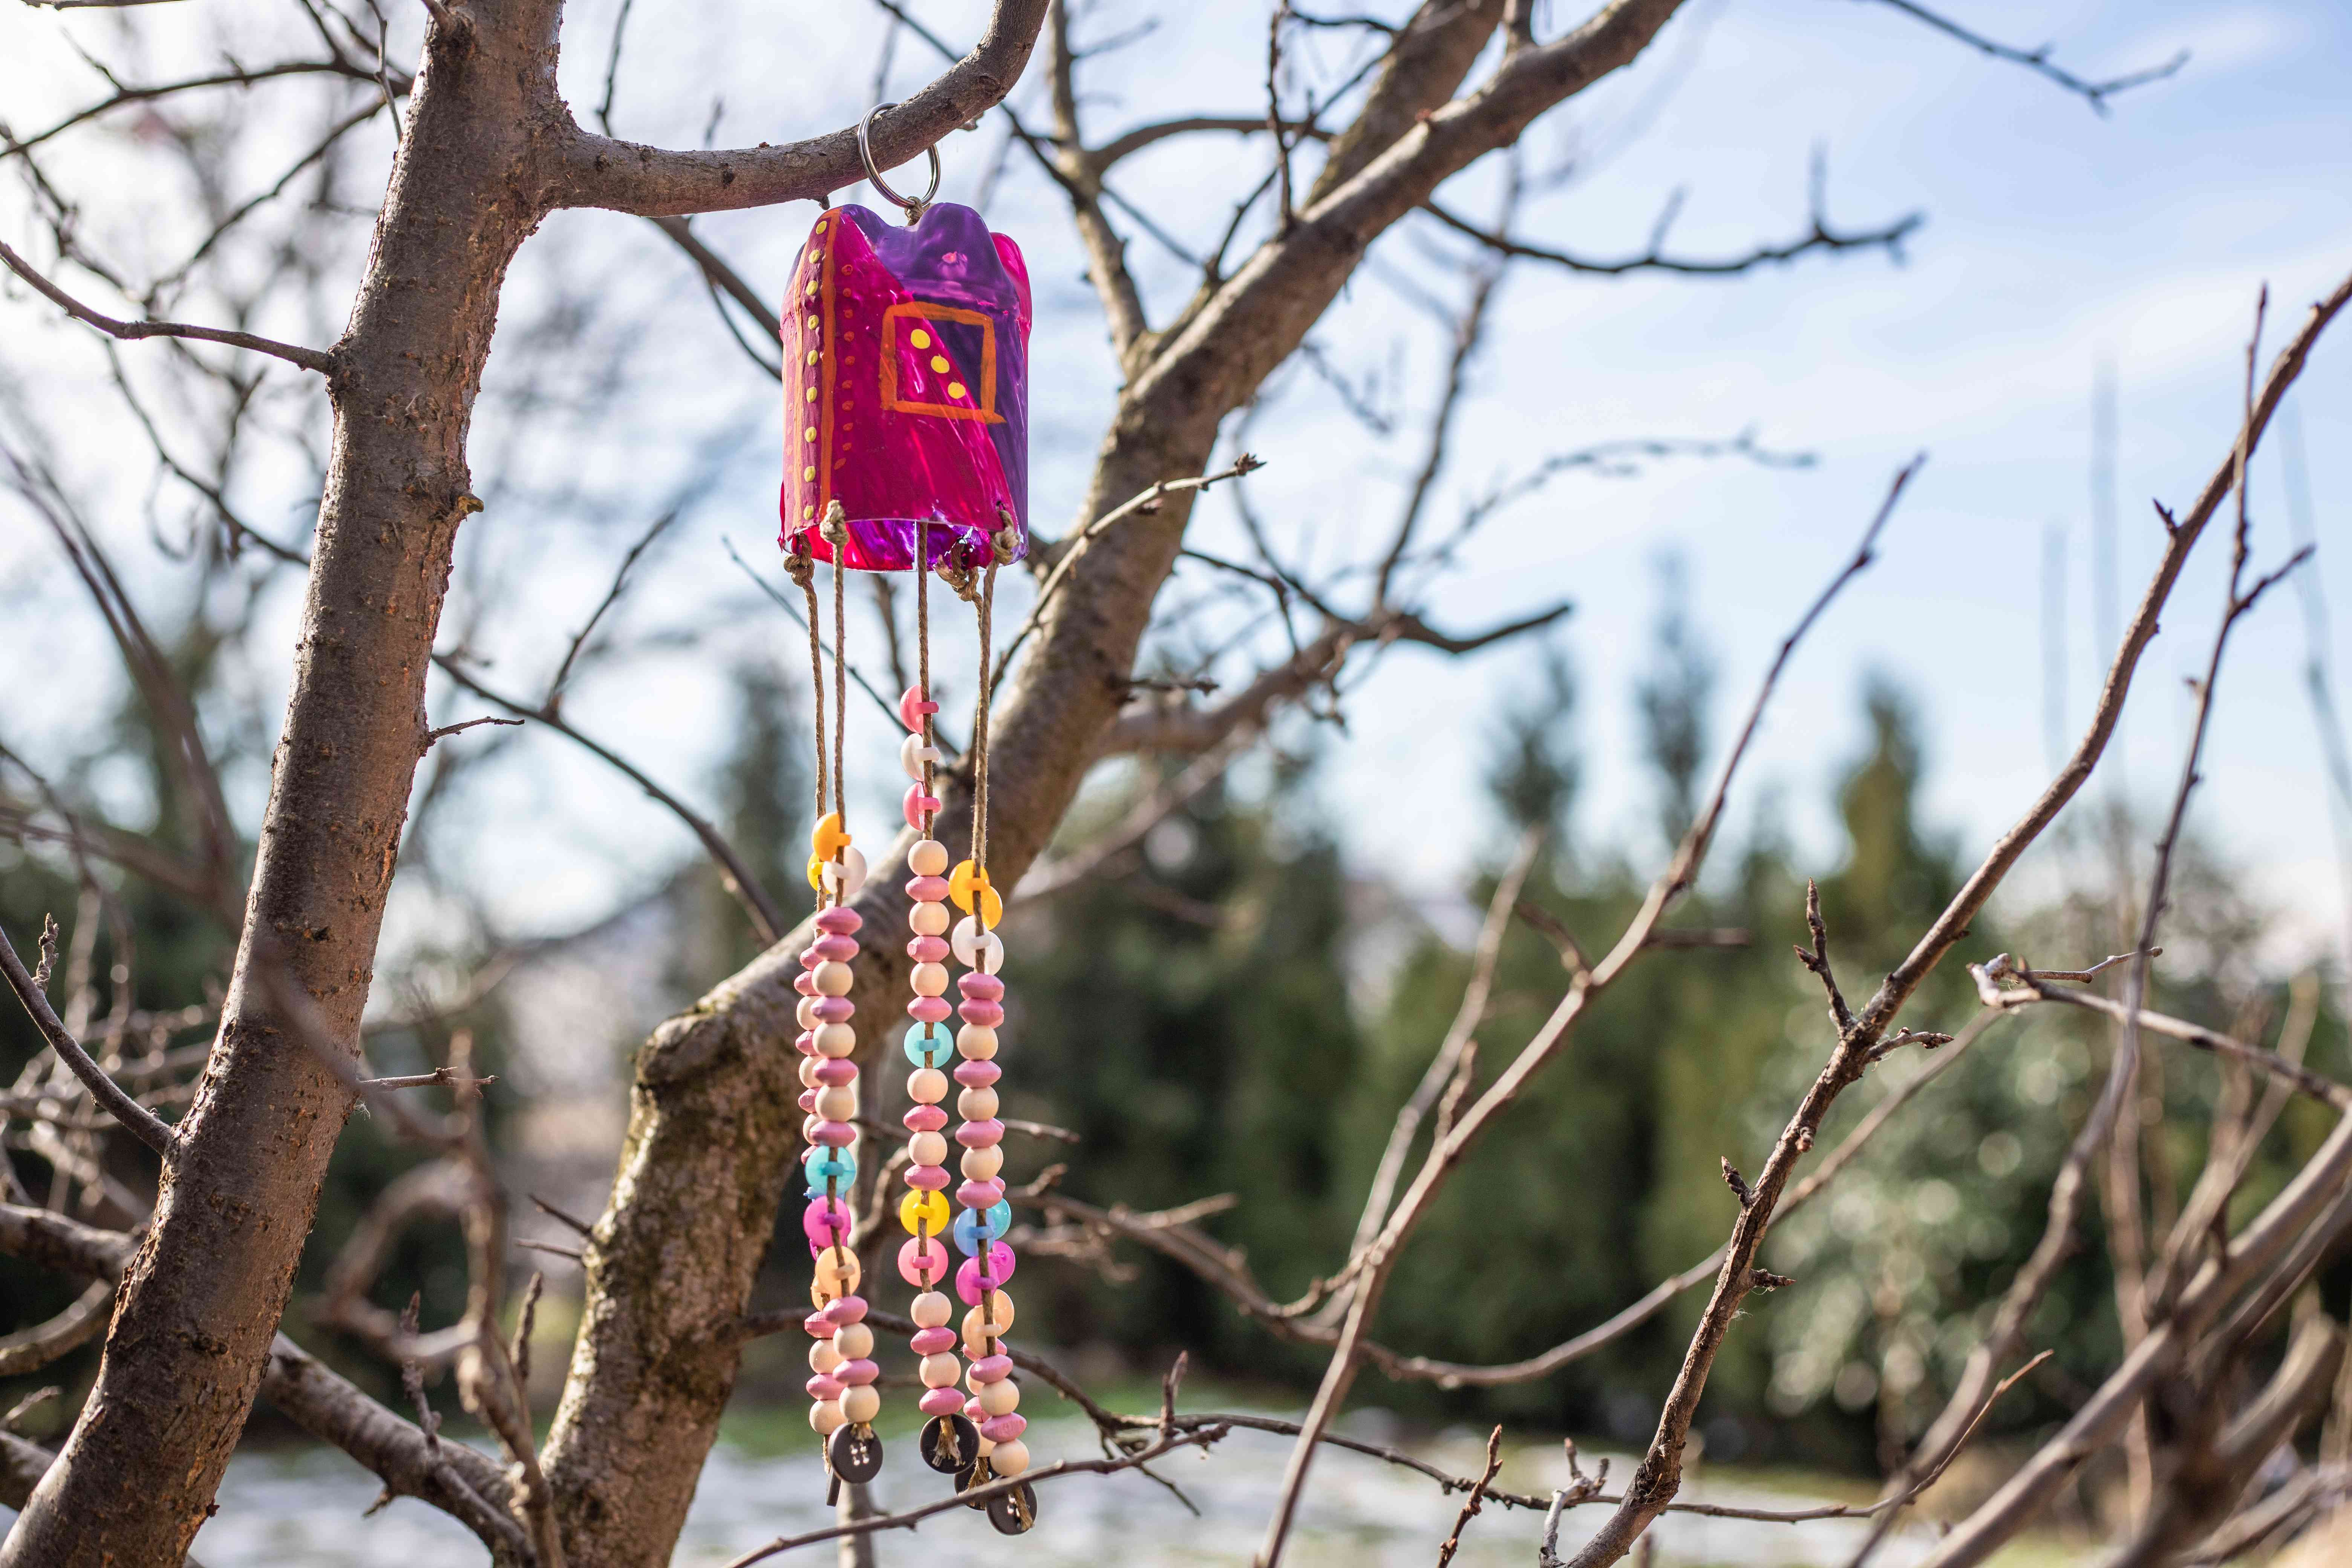 recycled plastic bottle as wind chime hung in tree